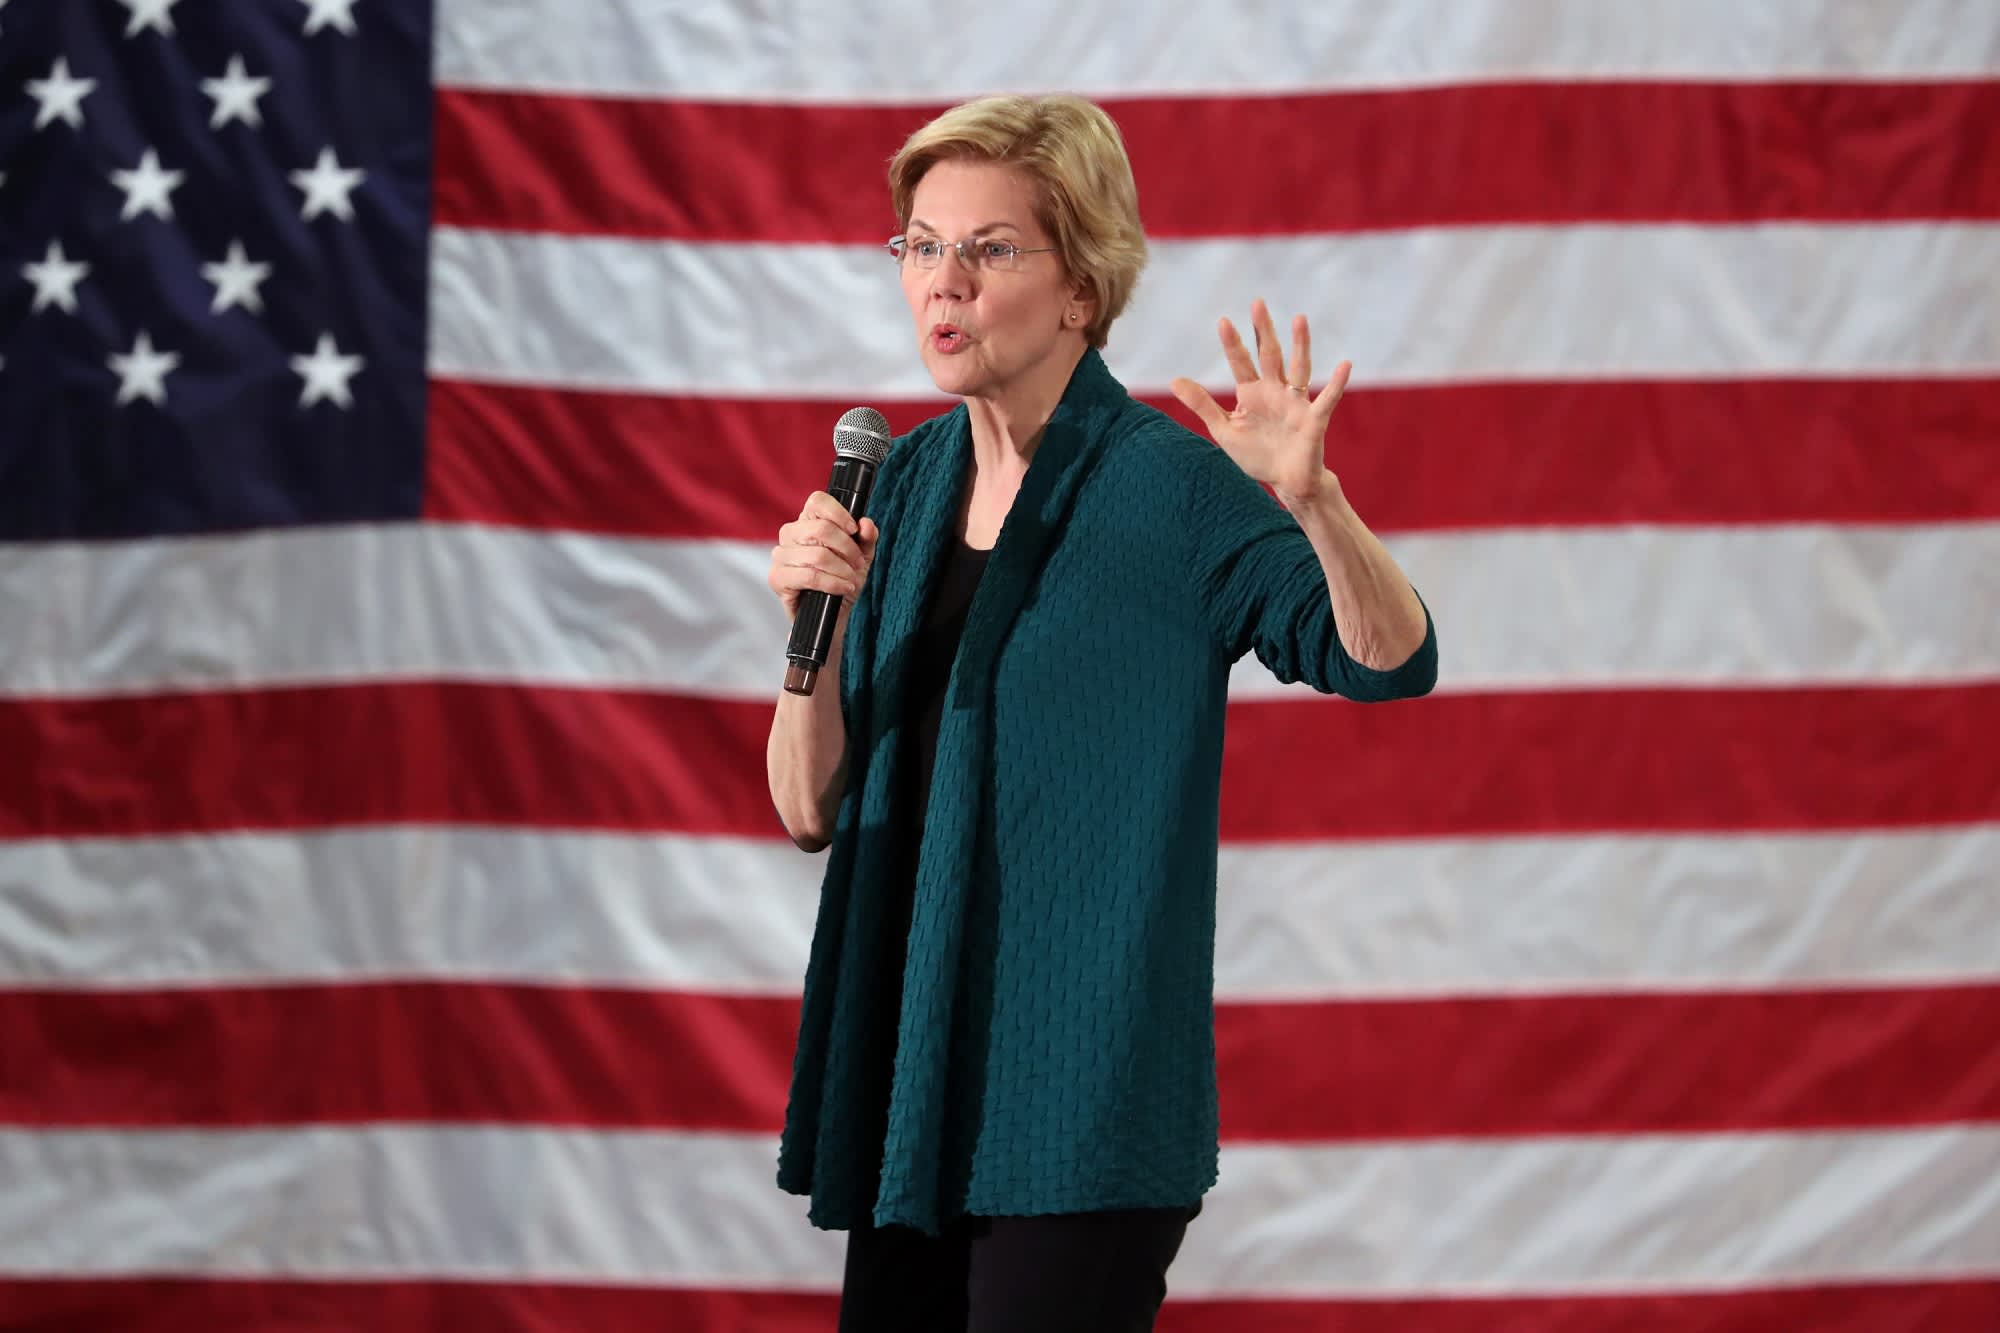 Democratic 2020 U.S. presidential candidate and U.S. Senator Elizabeth Warren (D-MA) speaks to supporters in Memphis, Tennessee, U.S. March 17, 2019.